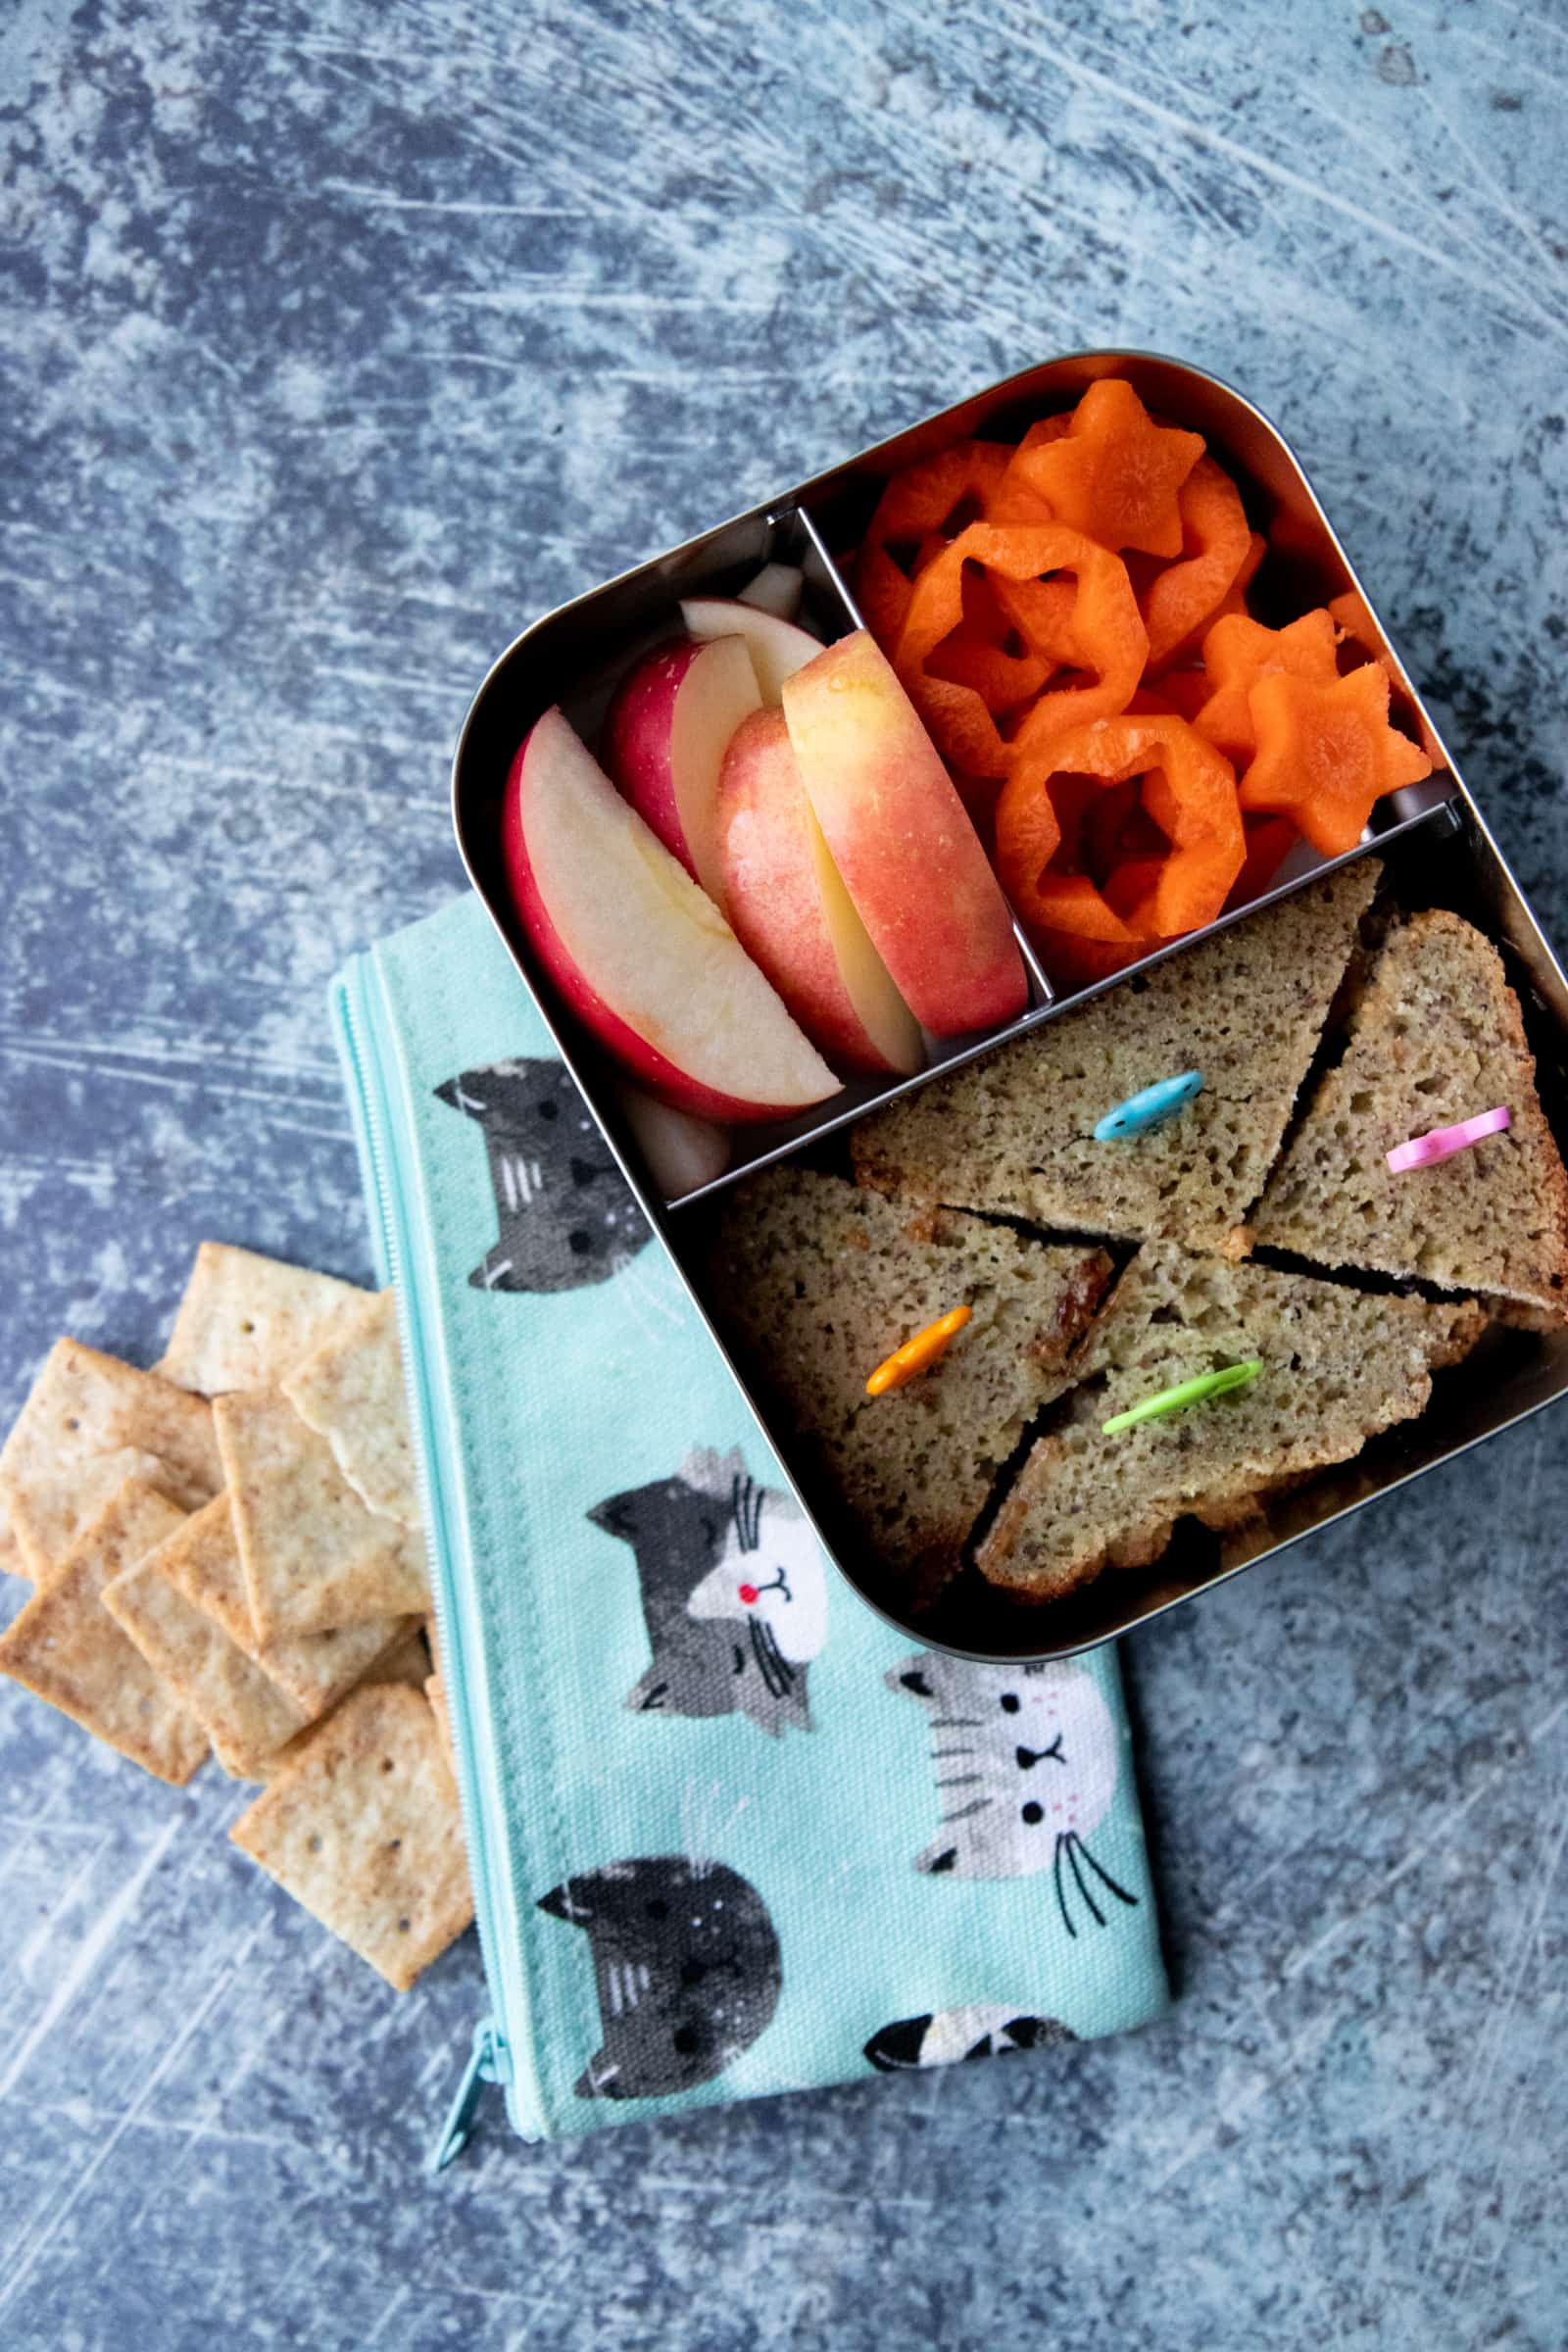 Steel lunchbox on top of a bag of crackers. The lunch box holds a sandwich, apple slices, and carrots cut into stars.